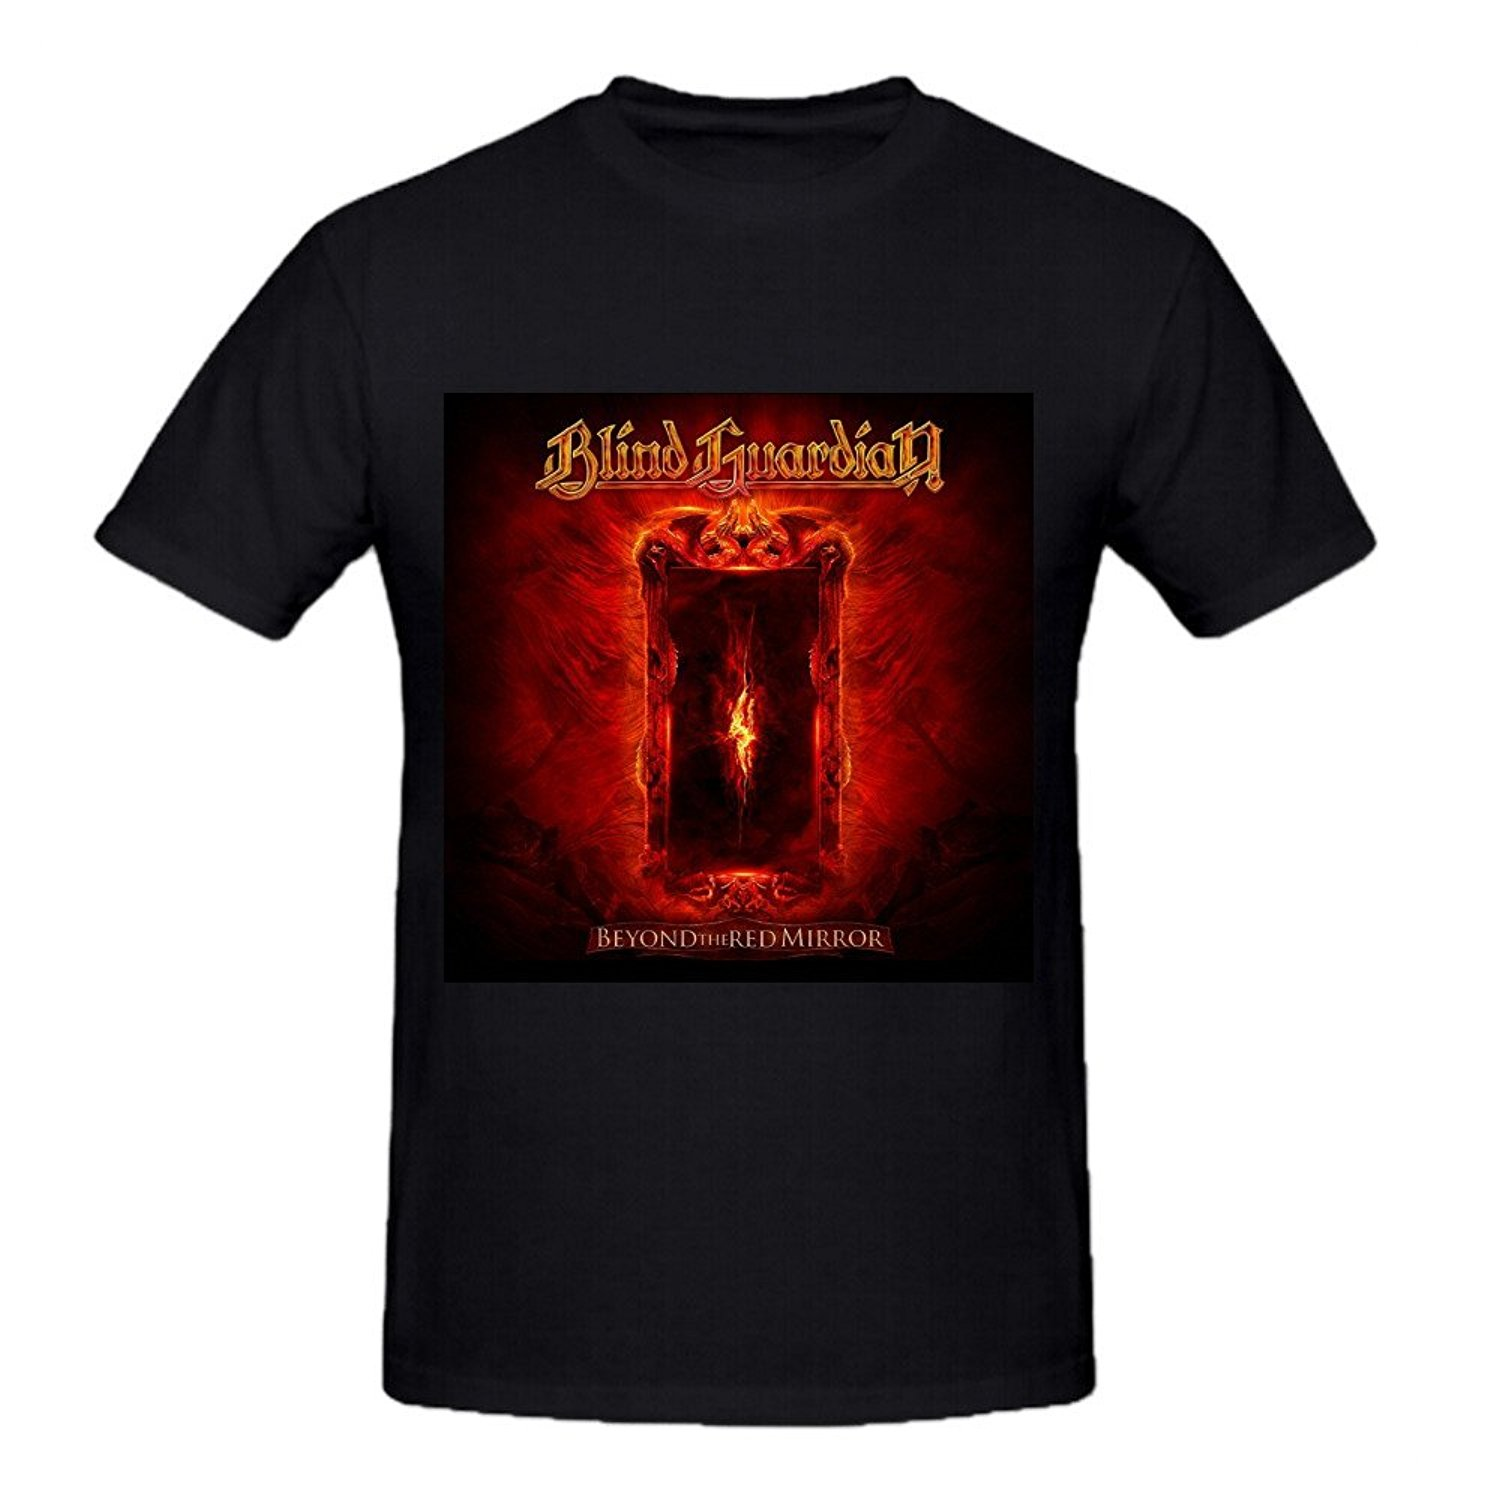 BLIND GUARDIAN BEYOND THE RED MIRROR HEAVY METAL GRAVE DIGGER NEW BLACK T-SHIRT T Shirt for Men O-Neck Tops Male Top Tee